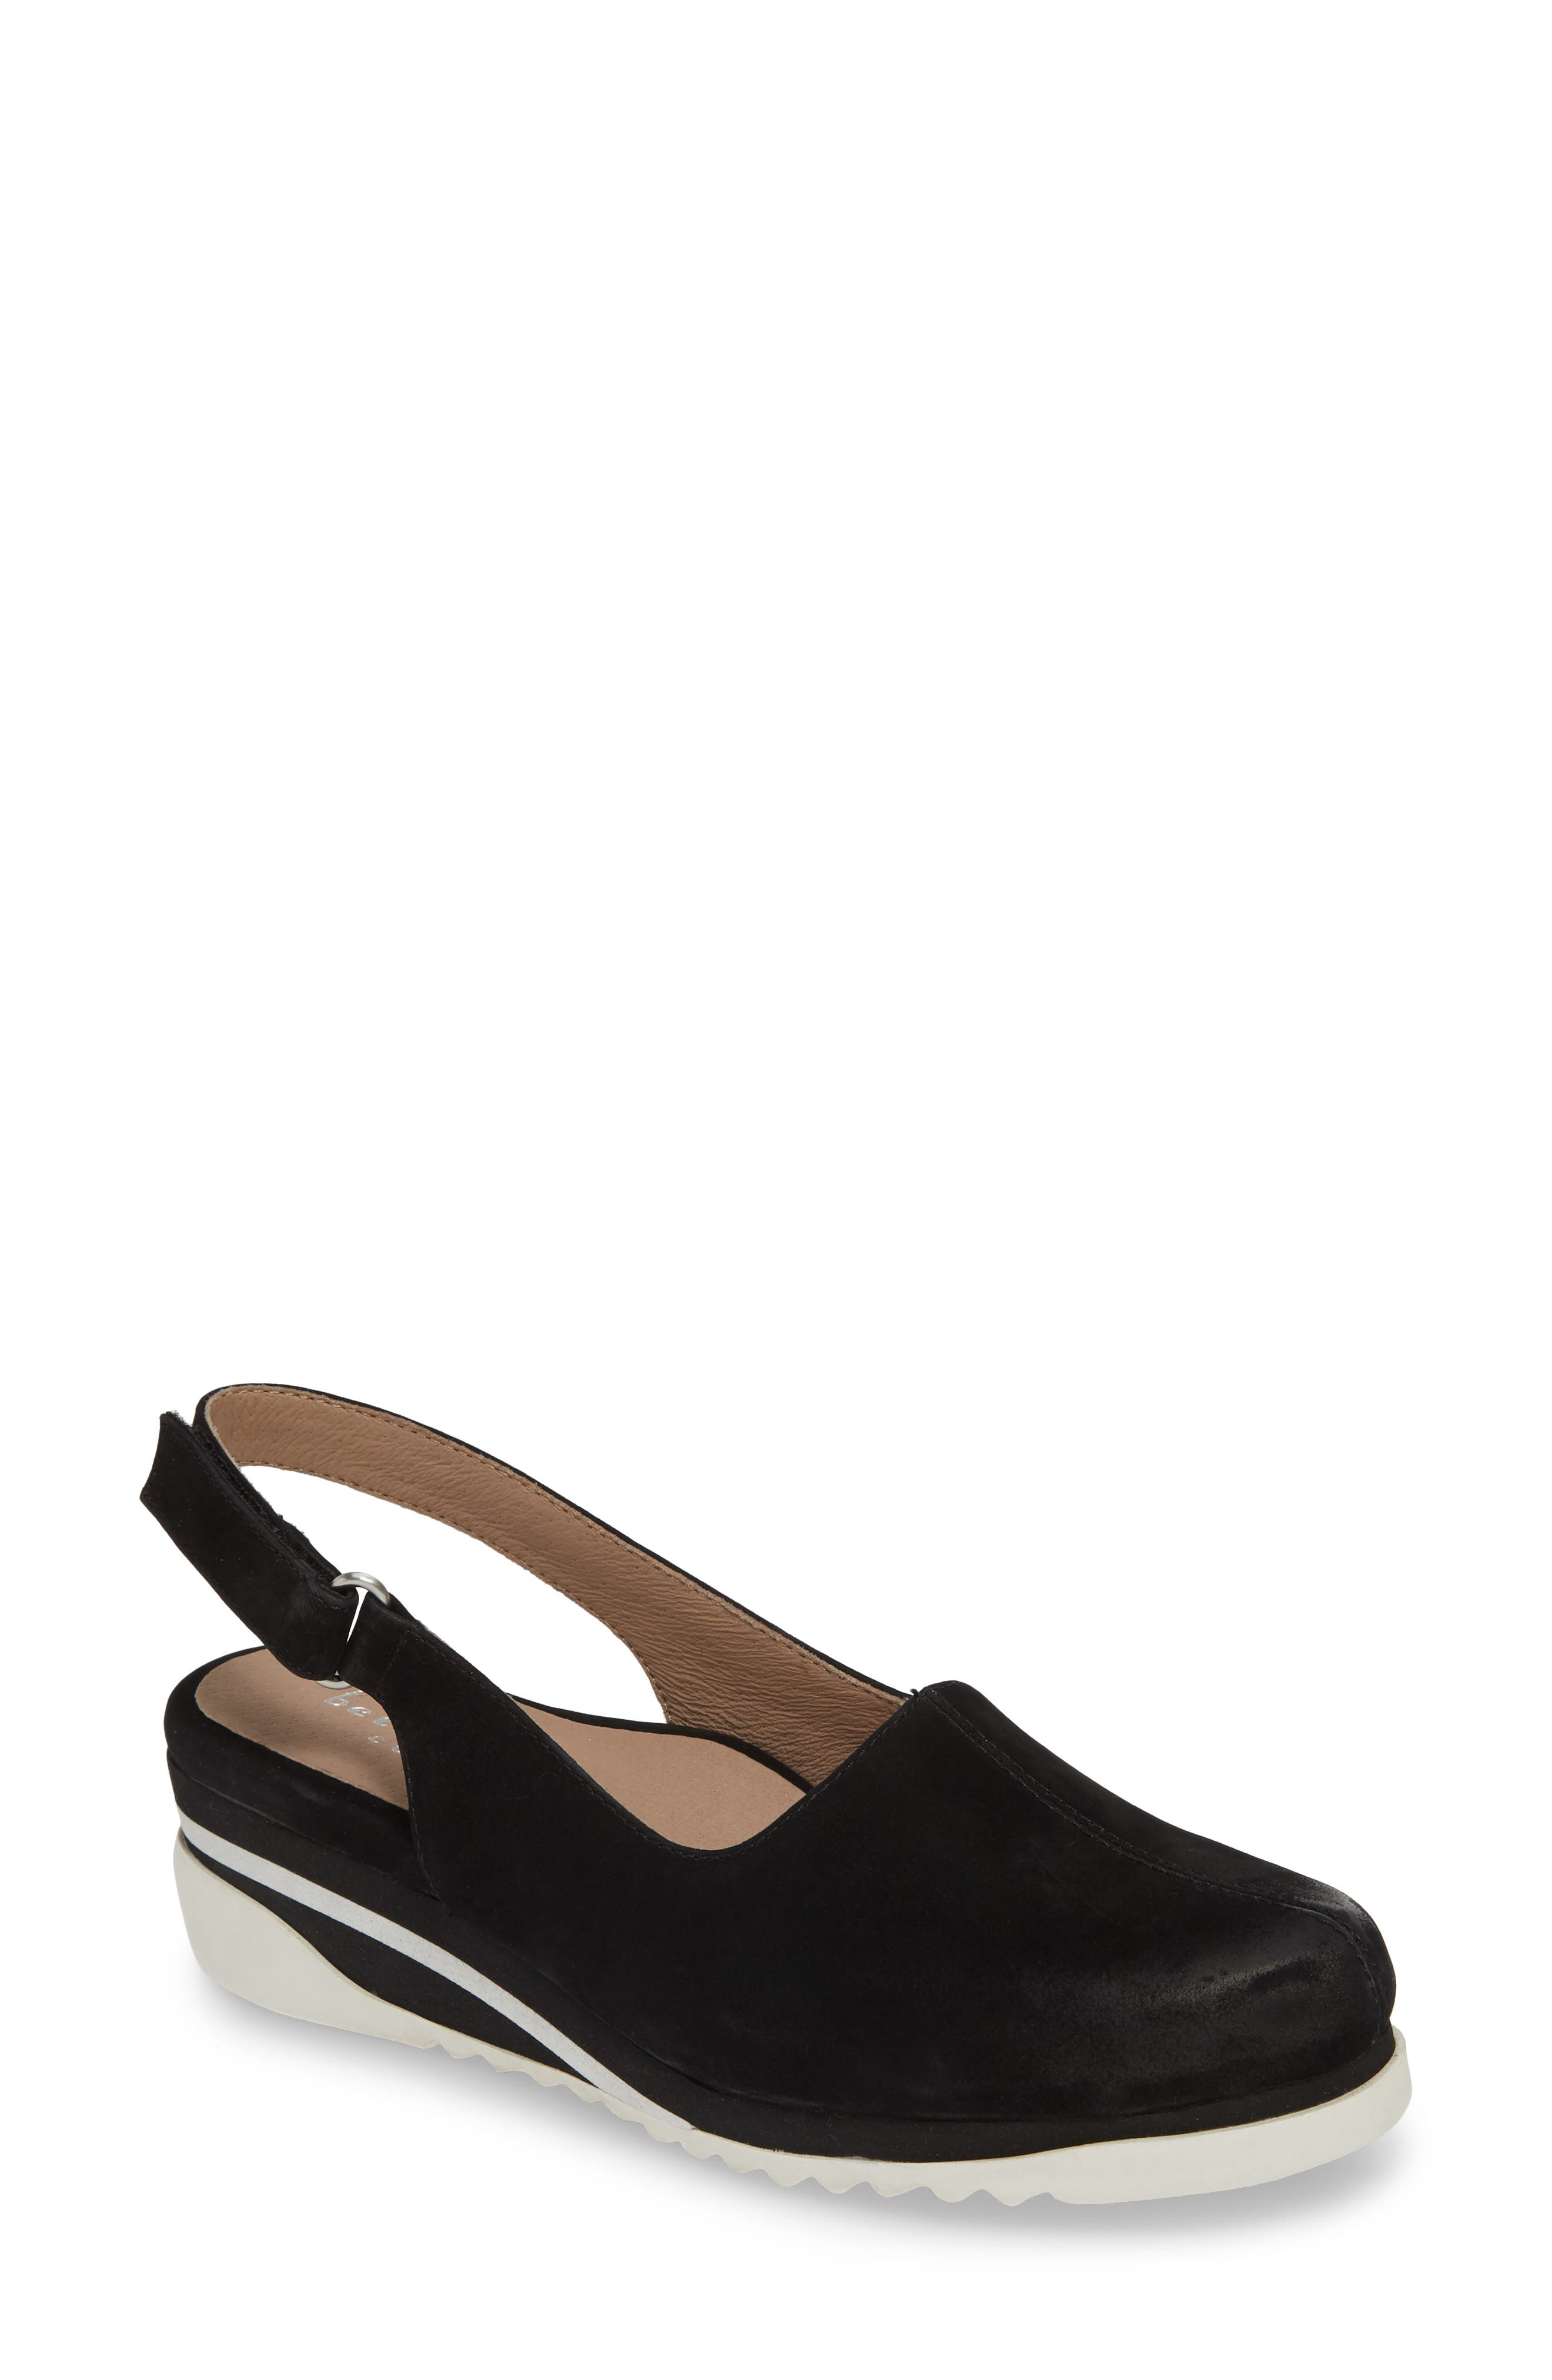 Image of BETTYE MULLER CONCEPTS Taye Leather Slingback Wedge